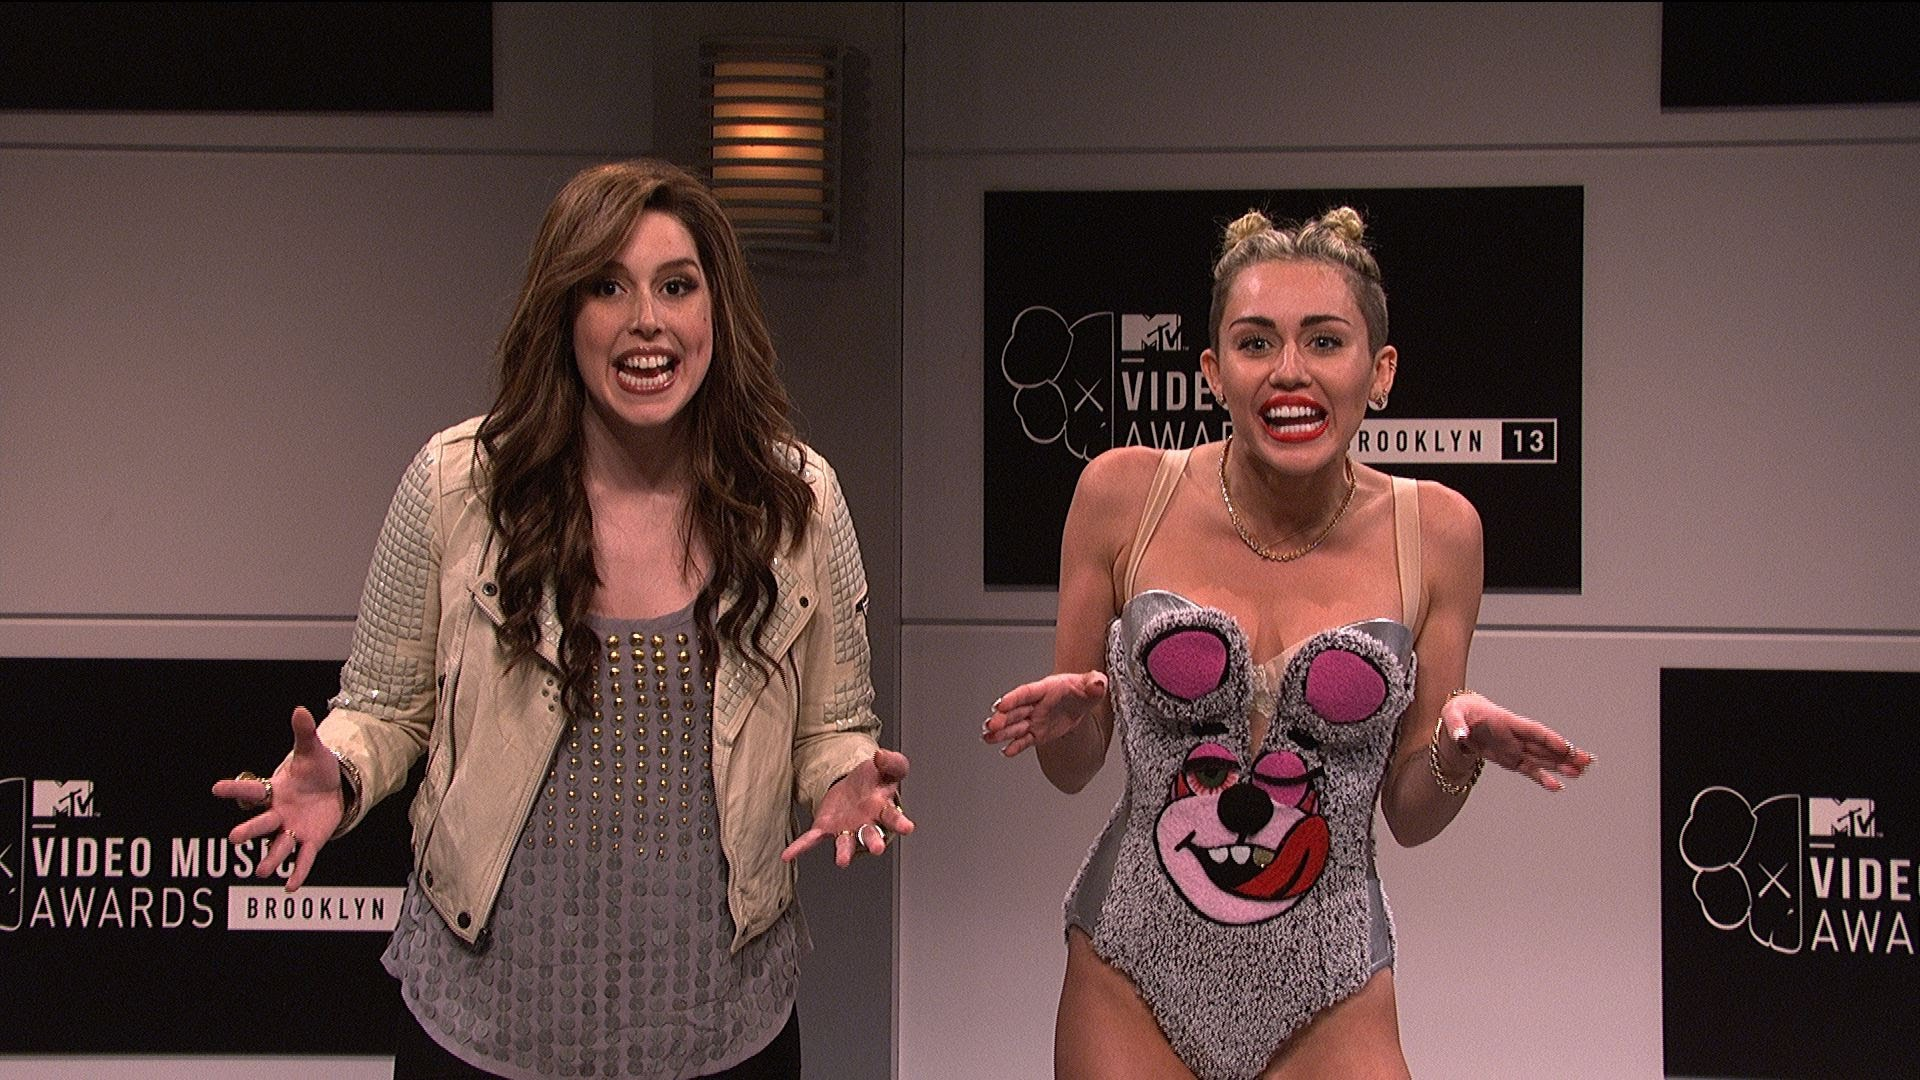 Miley Cyrus hosts SNL